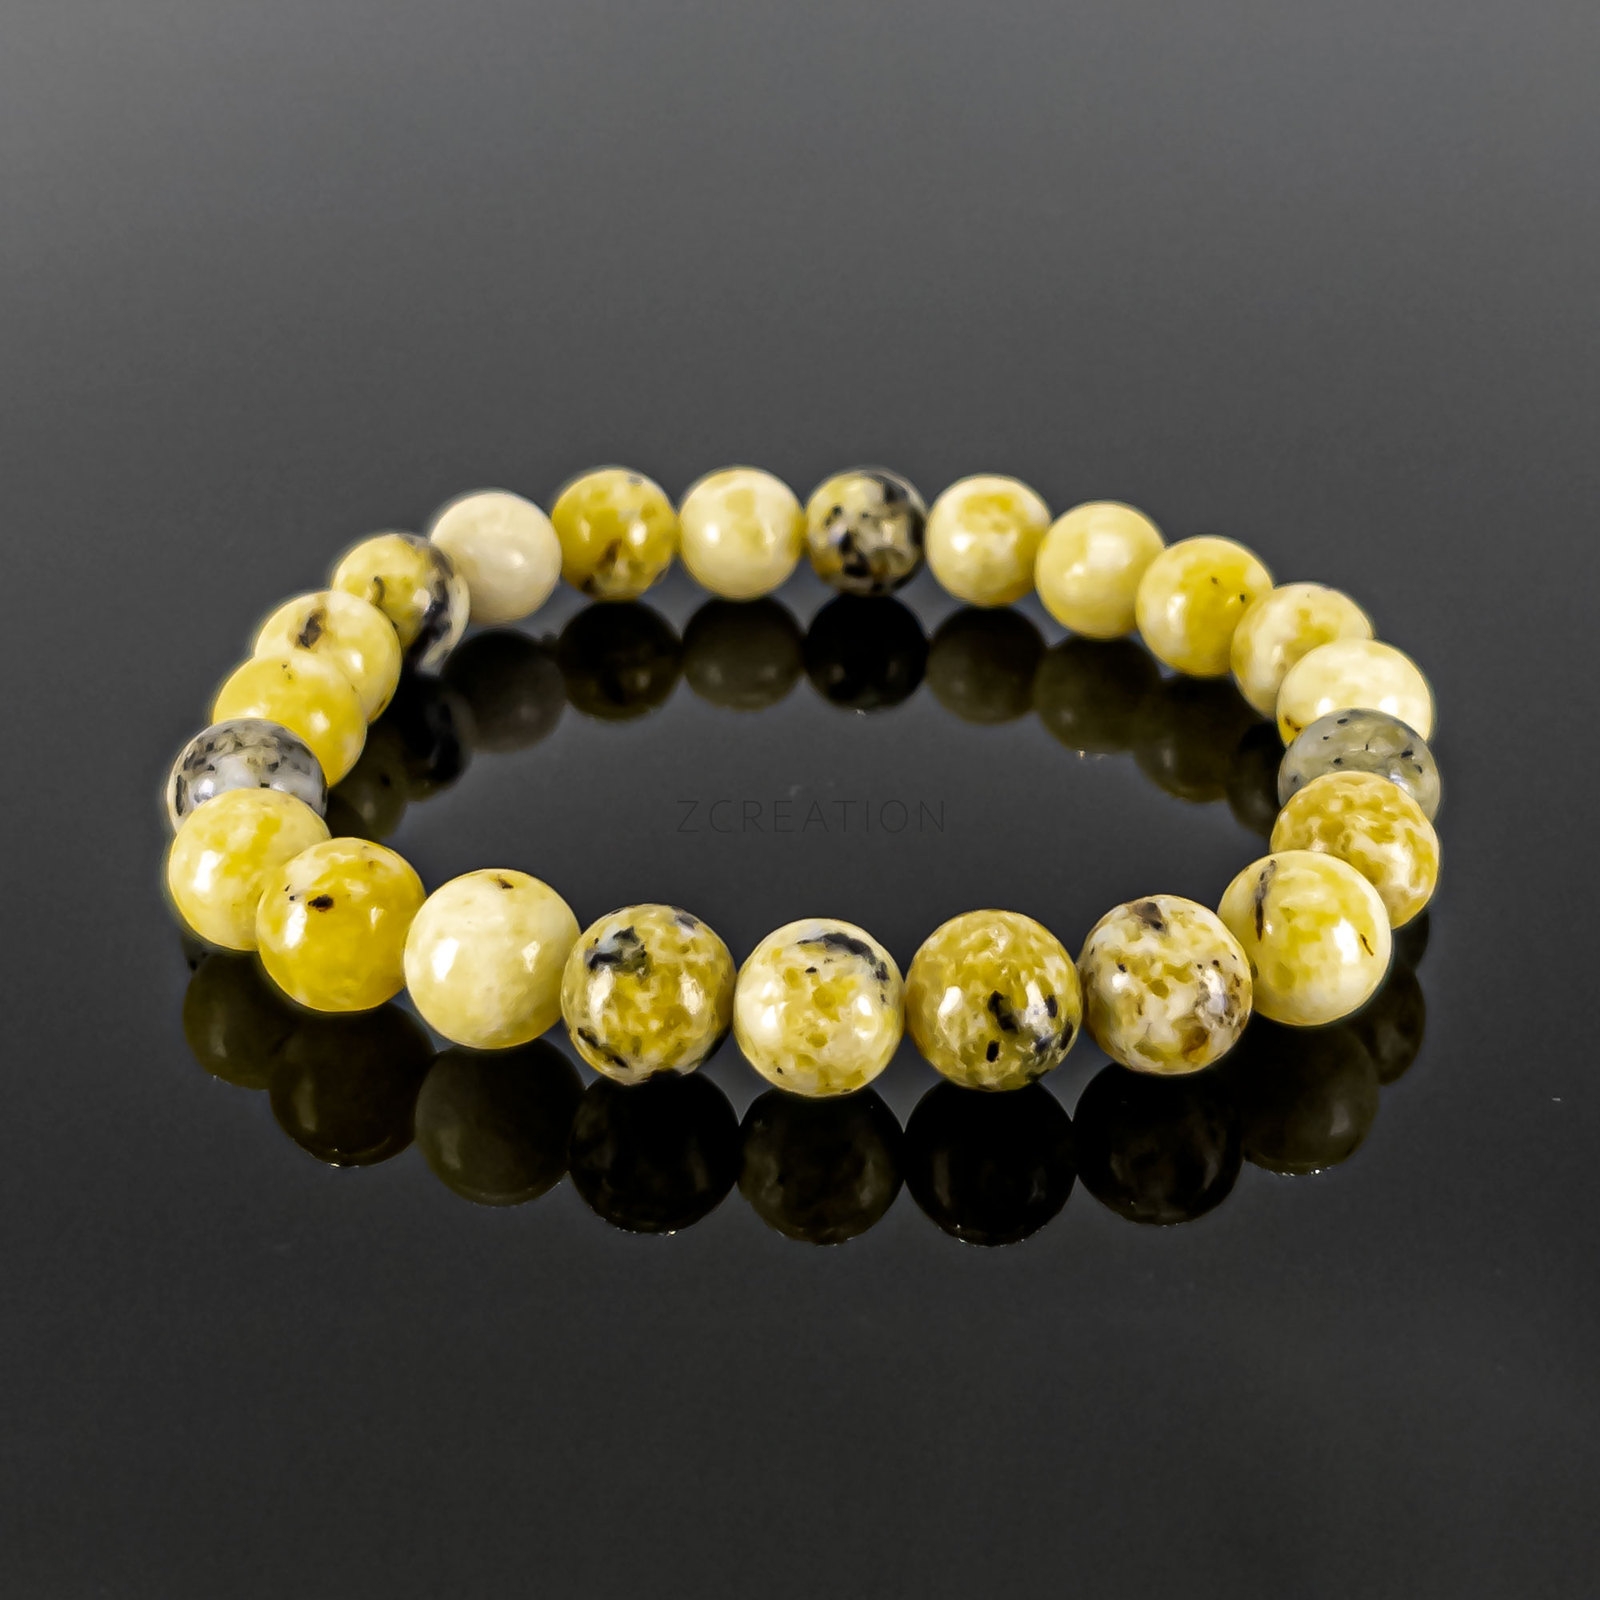 Primary image for Serpentine Round Bead Stretchable Bracelets